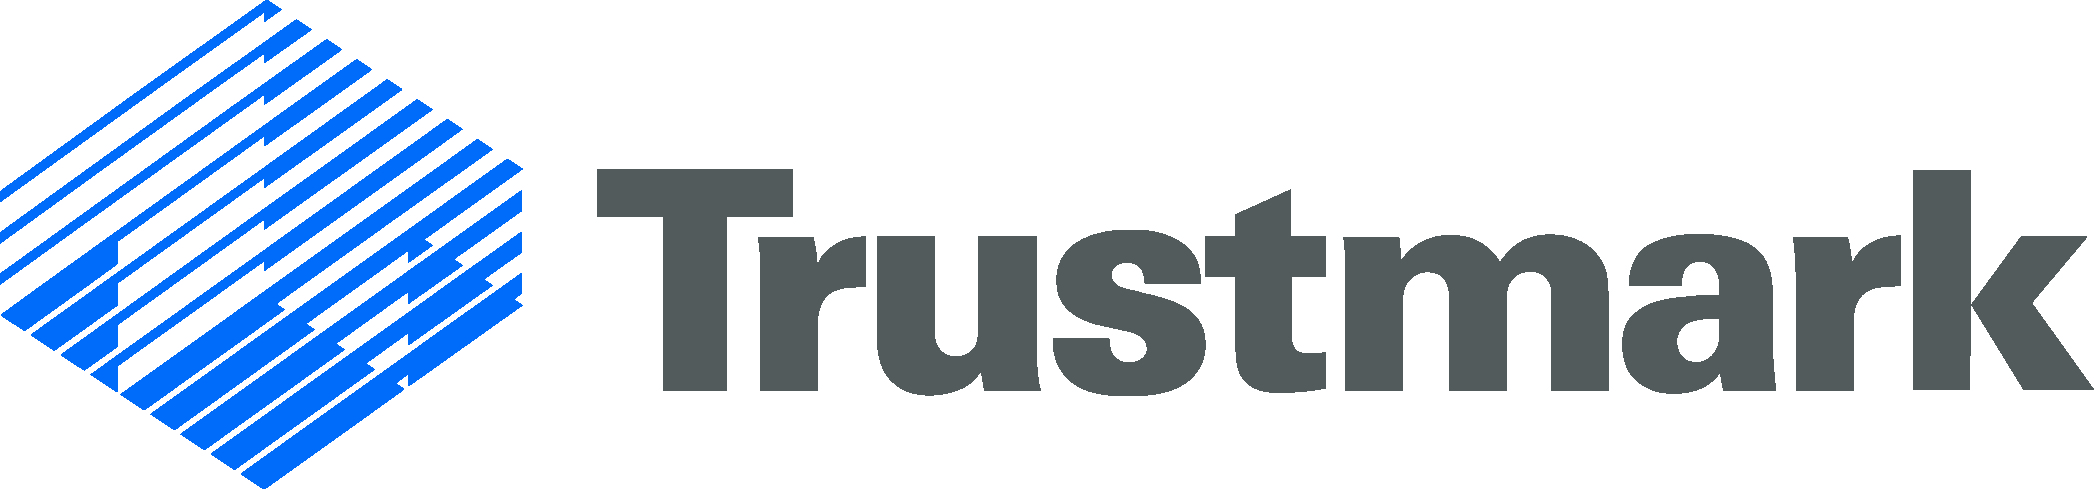 Support provided by Trustmark